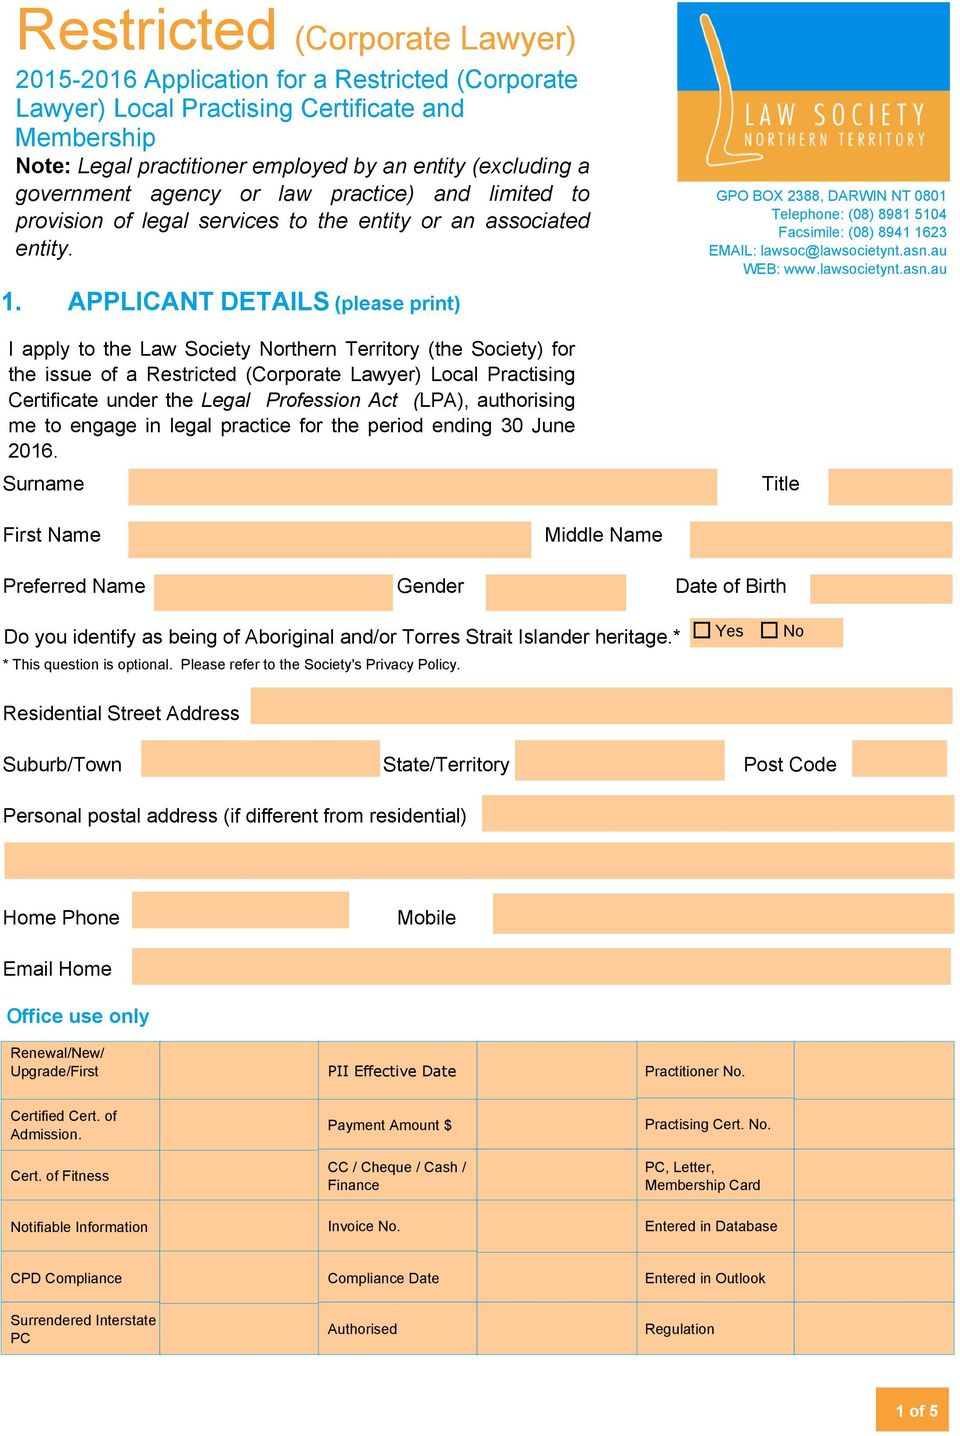 APPLICANT DETAILS (please print) I apply to the Law Society rthern Territory (the Society) for the issue of a Restricted (Corporate Lawyer) Local Practising Certificate under the Legal Profession Act